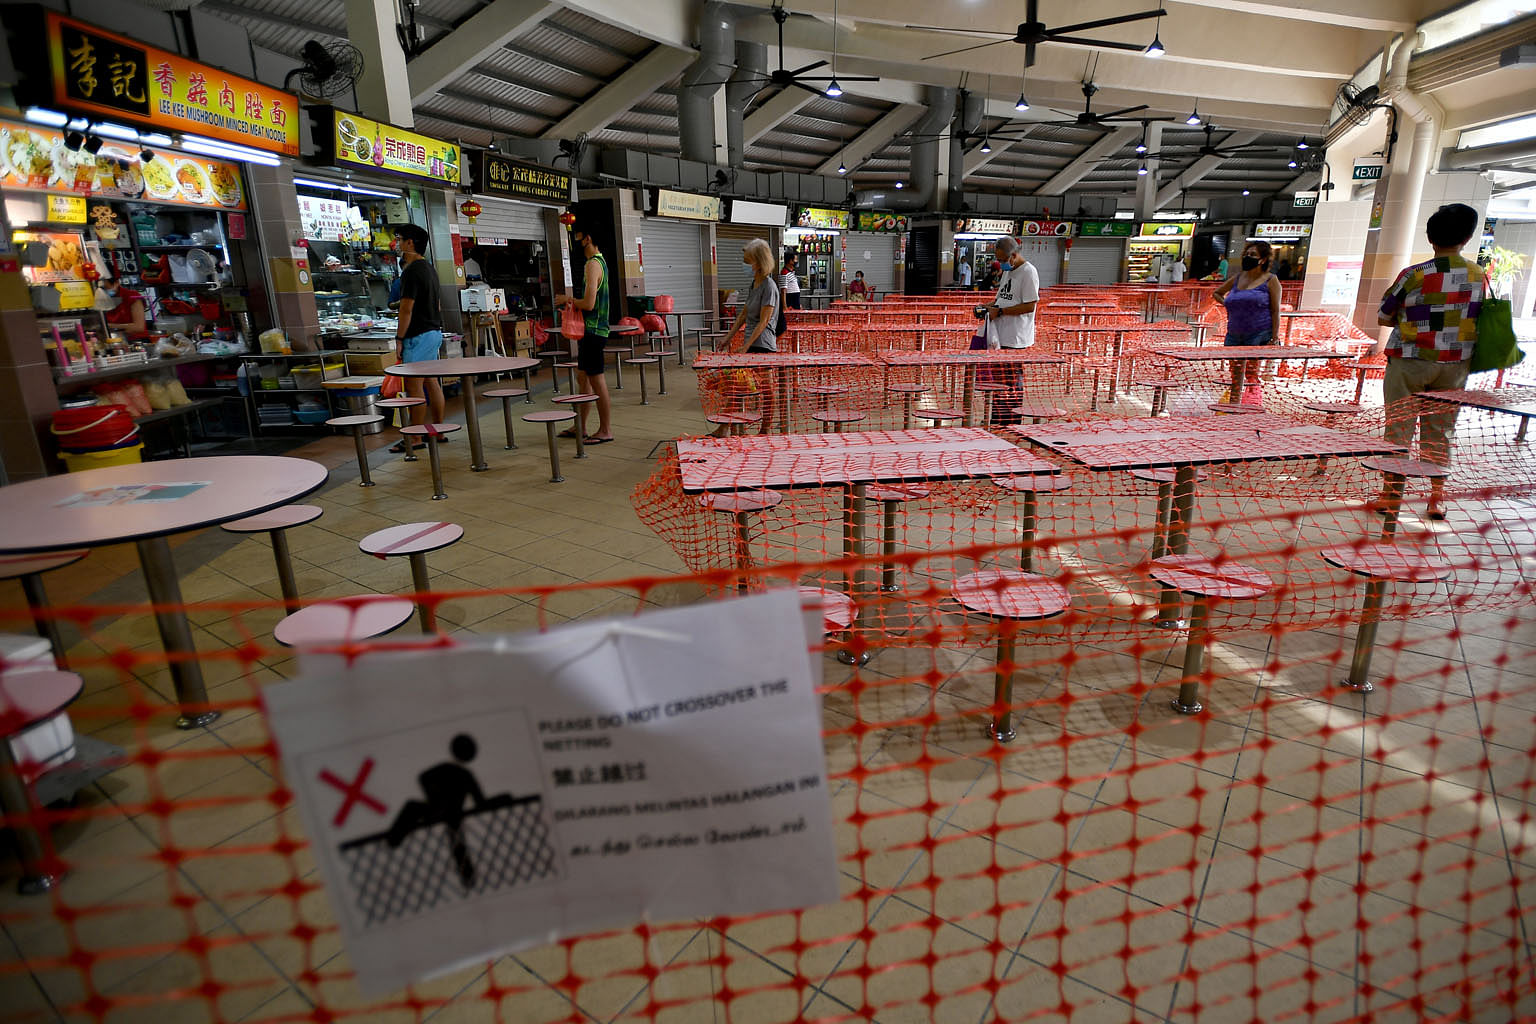 Patrons observing safe distancing while queueing for food at Tampines Round Market & Food Centre last Tuesday. This is part of the Government's precautionary measures for public health amid the coronavirus pandemic.